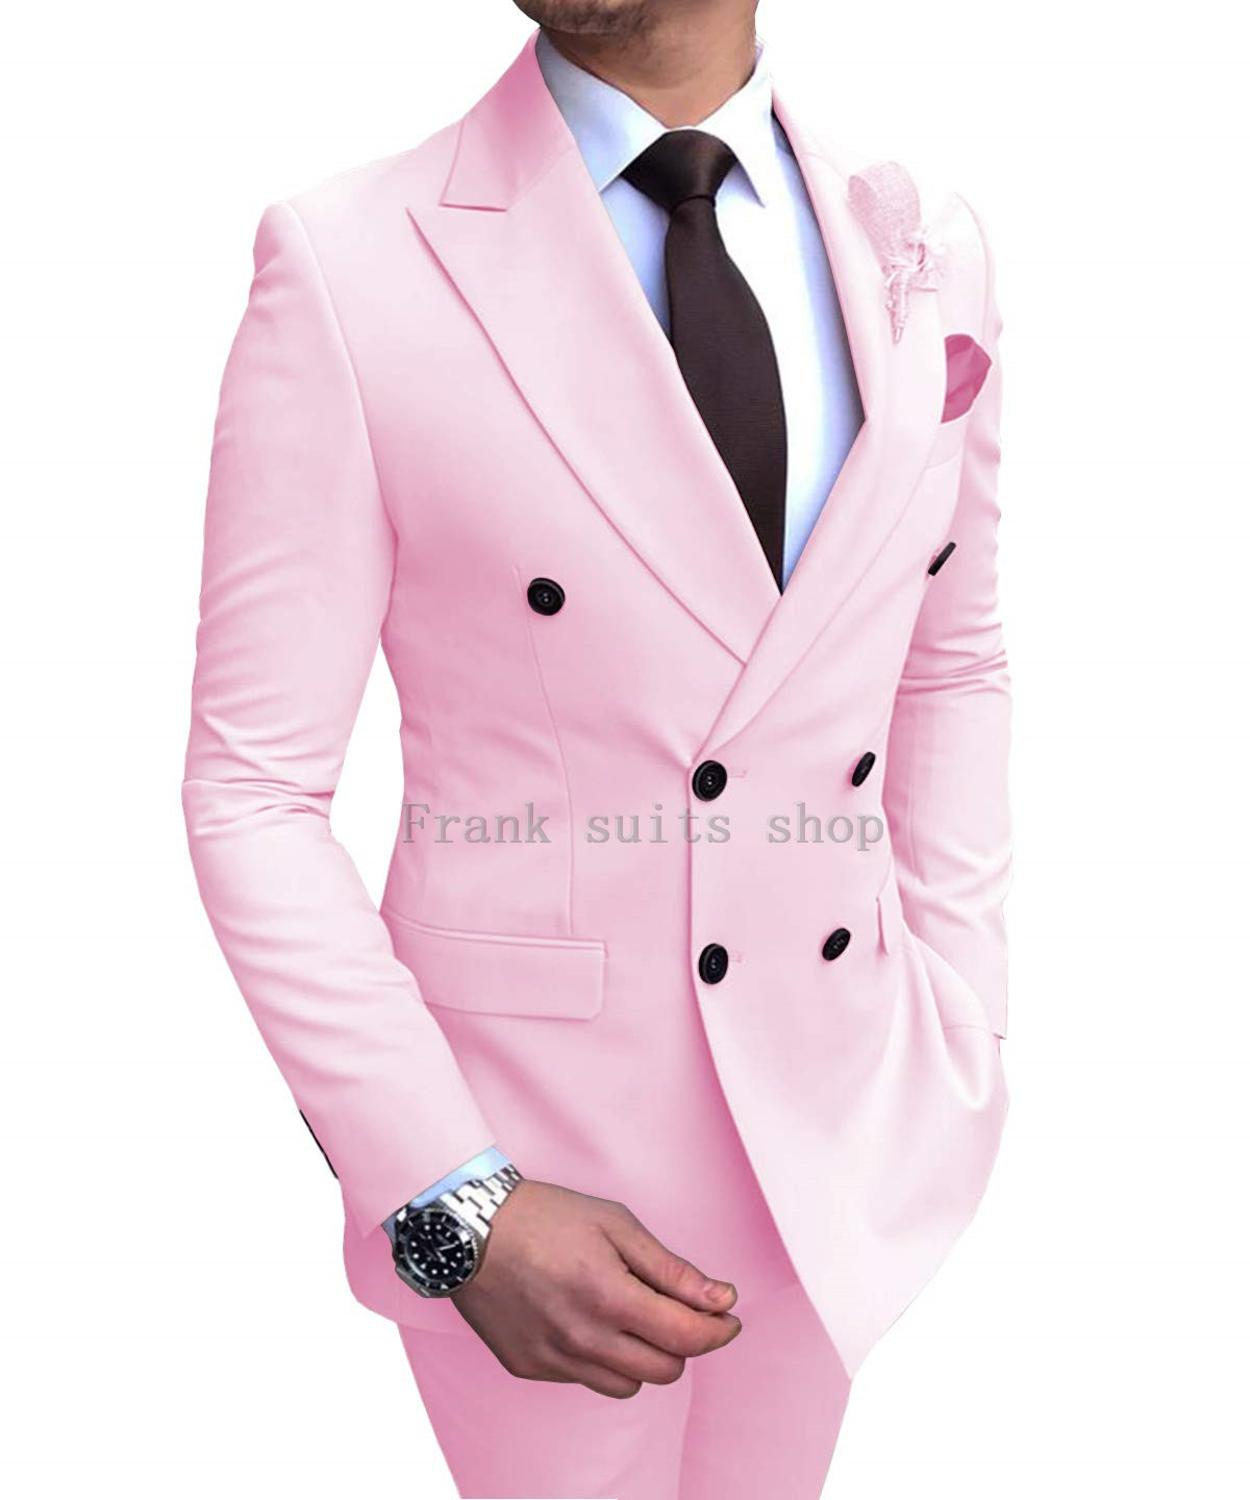 Pink Pinstriped Men/'s Suits 3 Pieces Formal Wear Peak Lapel Groom Tuxedos 2019